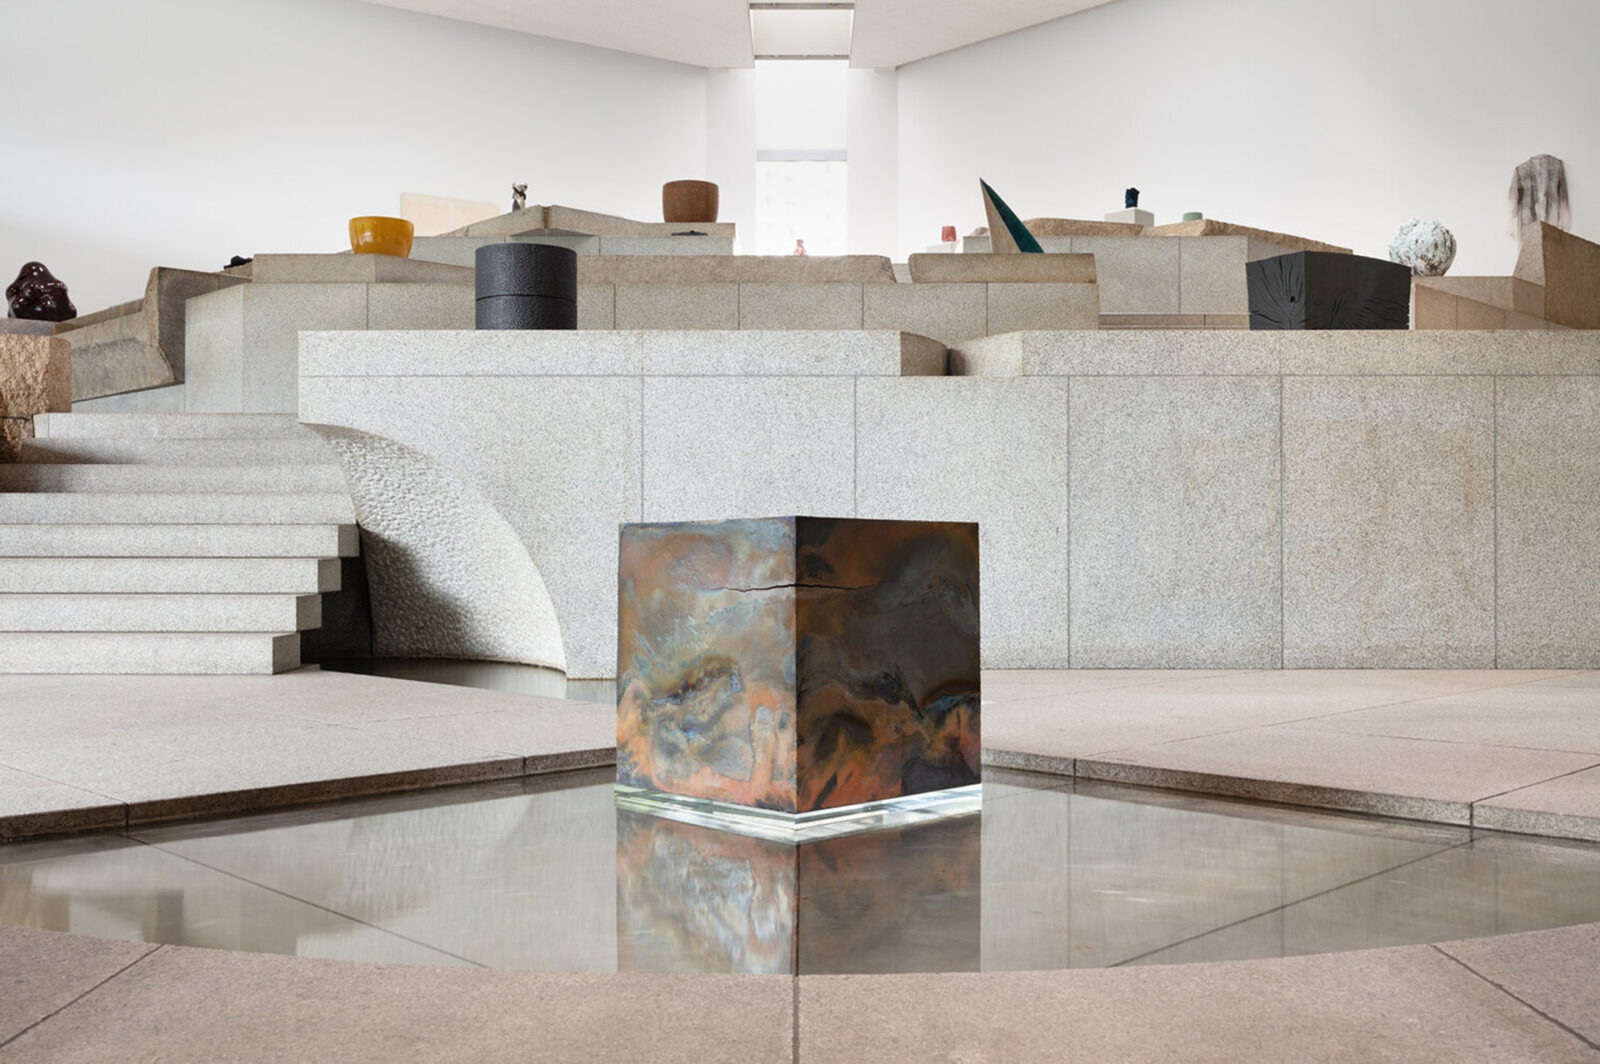 Fanglu Lin has been named as the winner of the fourth Loewe Foundation Craft Prize